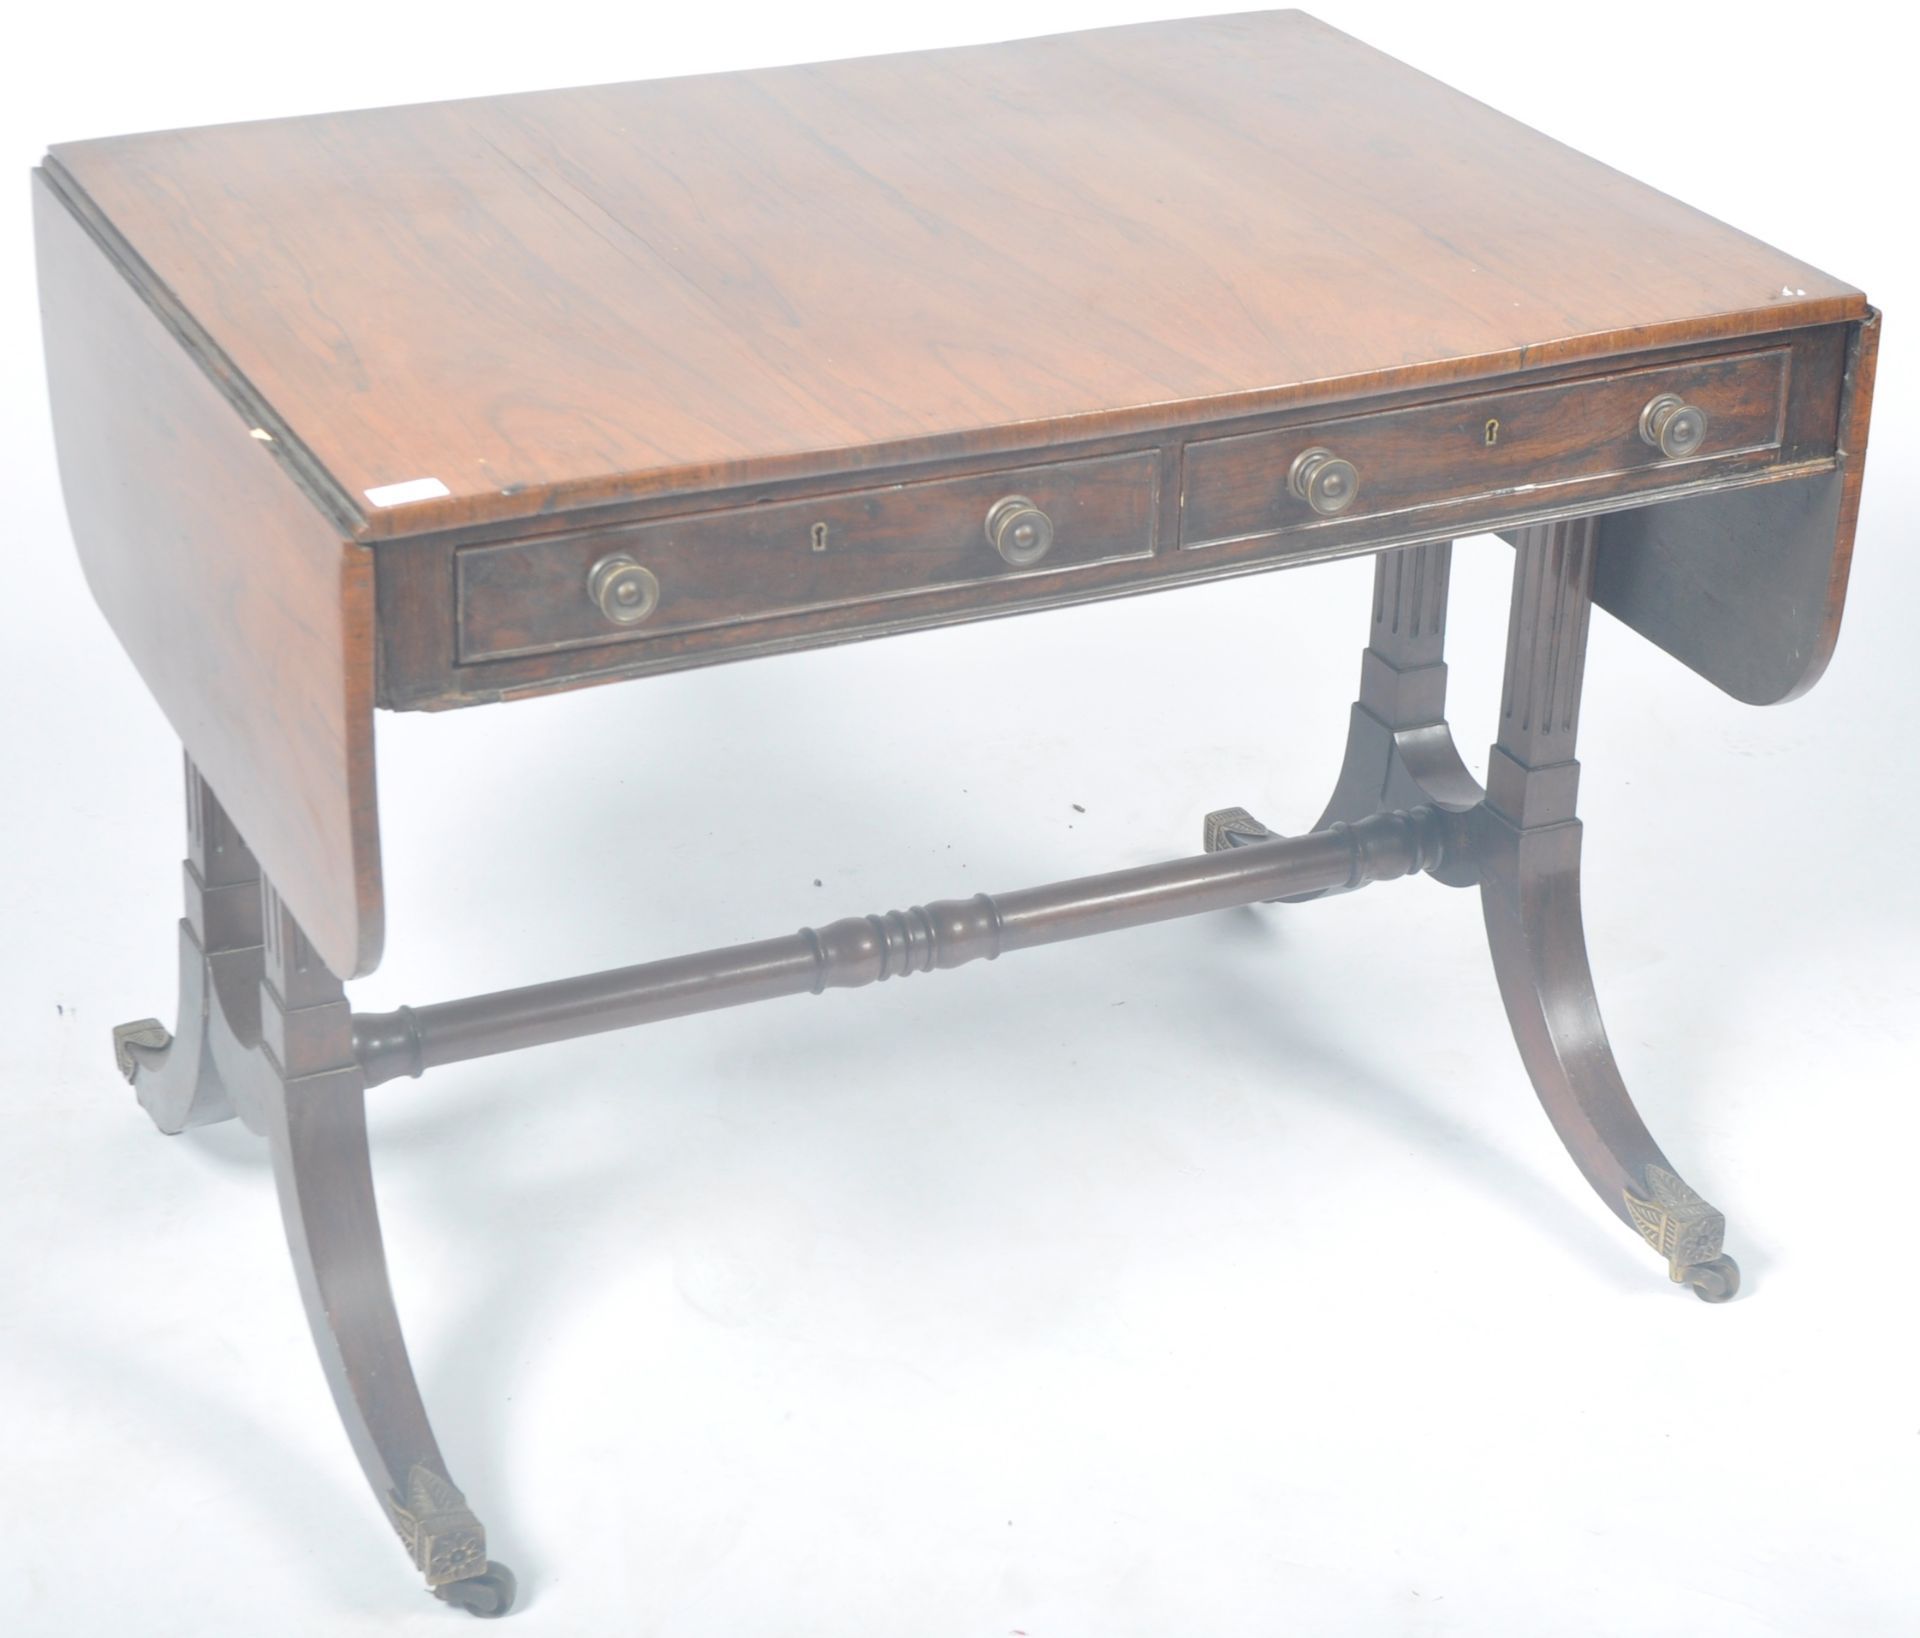 ANTIQUE ROSEWOOD REGENCY SOFA TABLE RETAILED BY HARRIS OF LONDON - Image 2 of 10